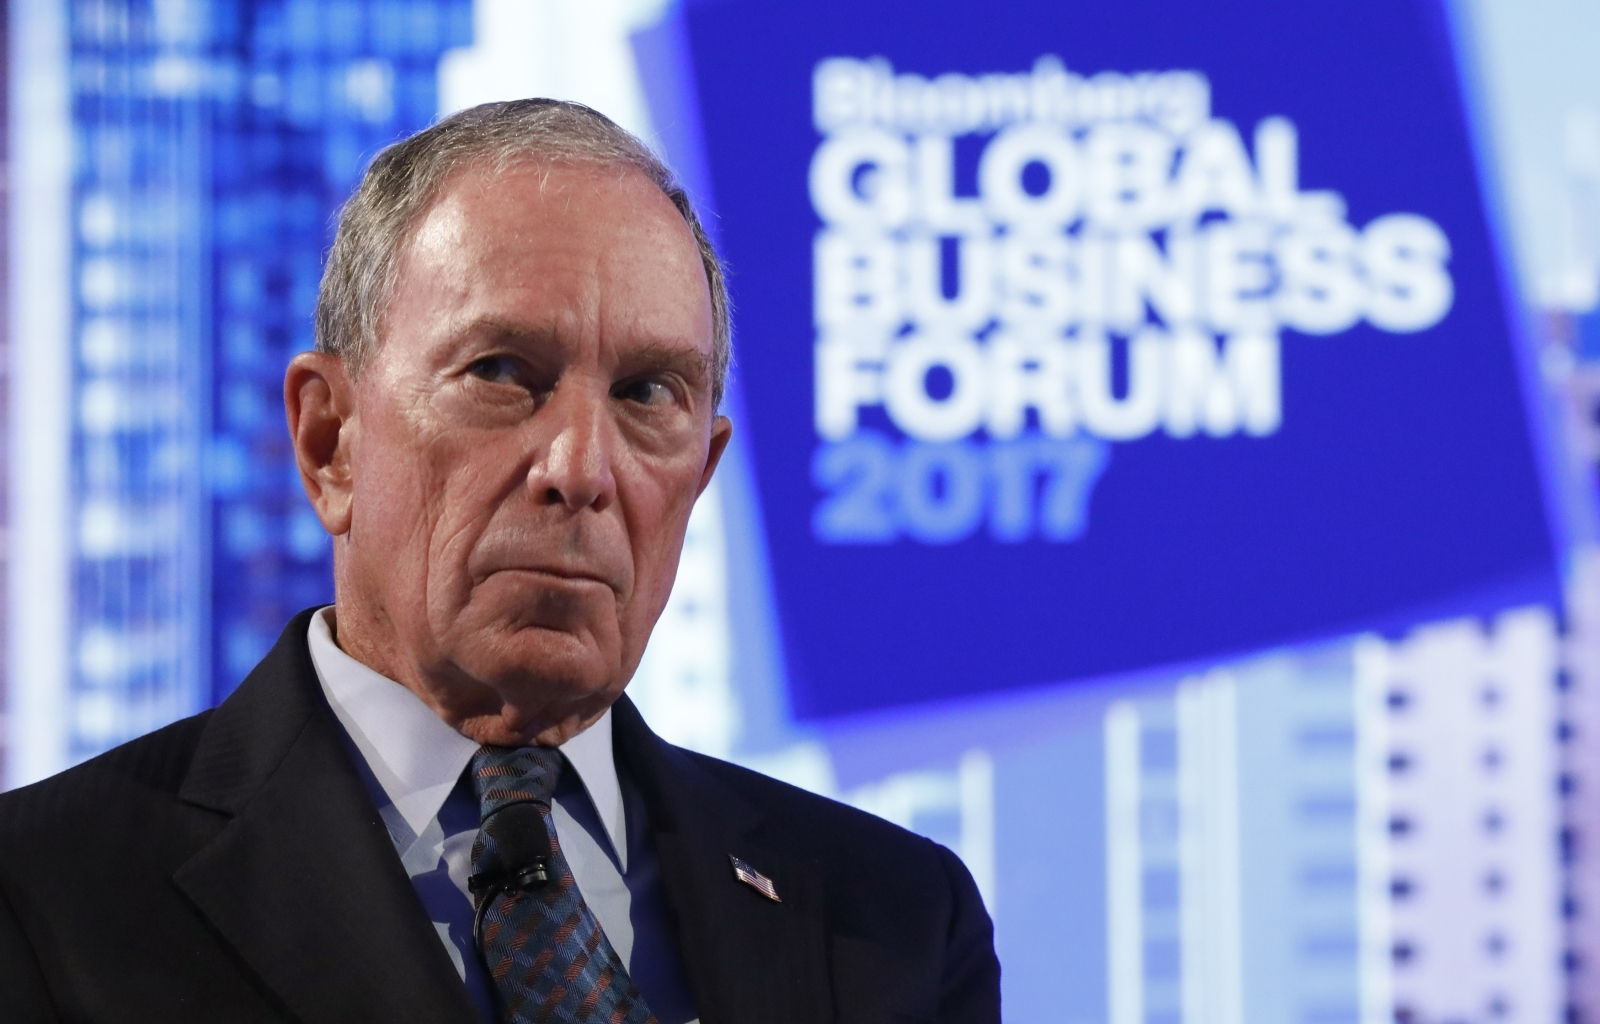 Bloomberg TV Will Cover the Boss' Presidential Campaign (But With Disclaimers)…